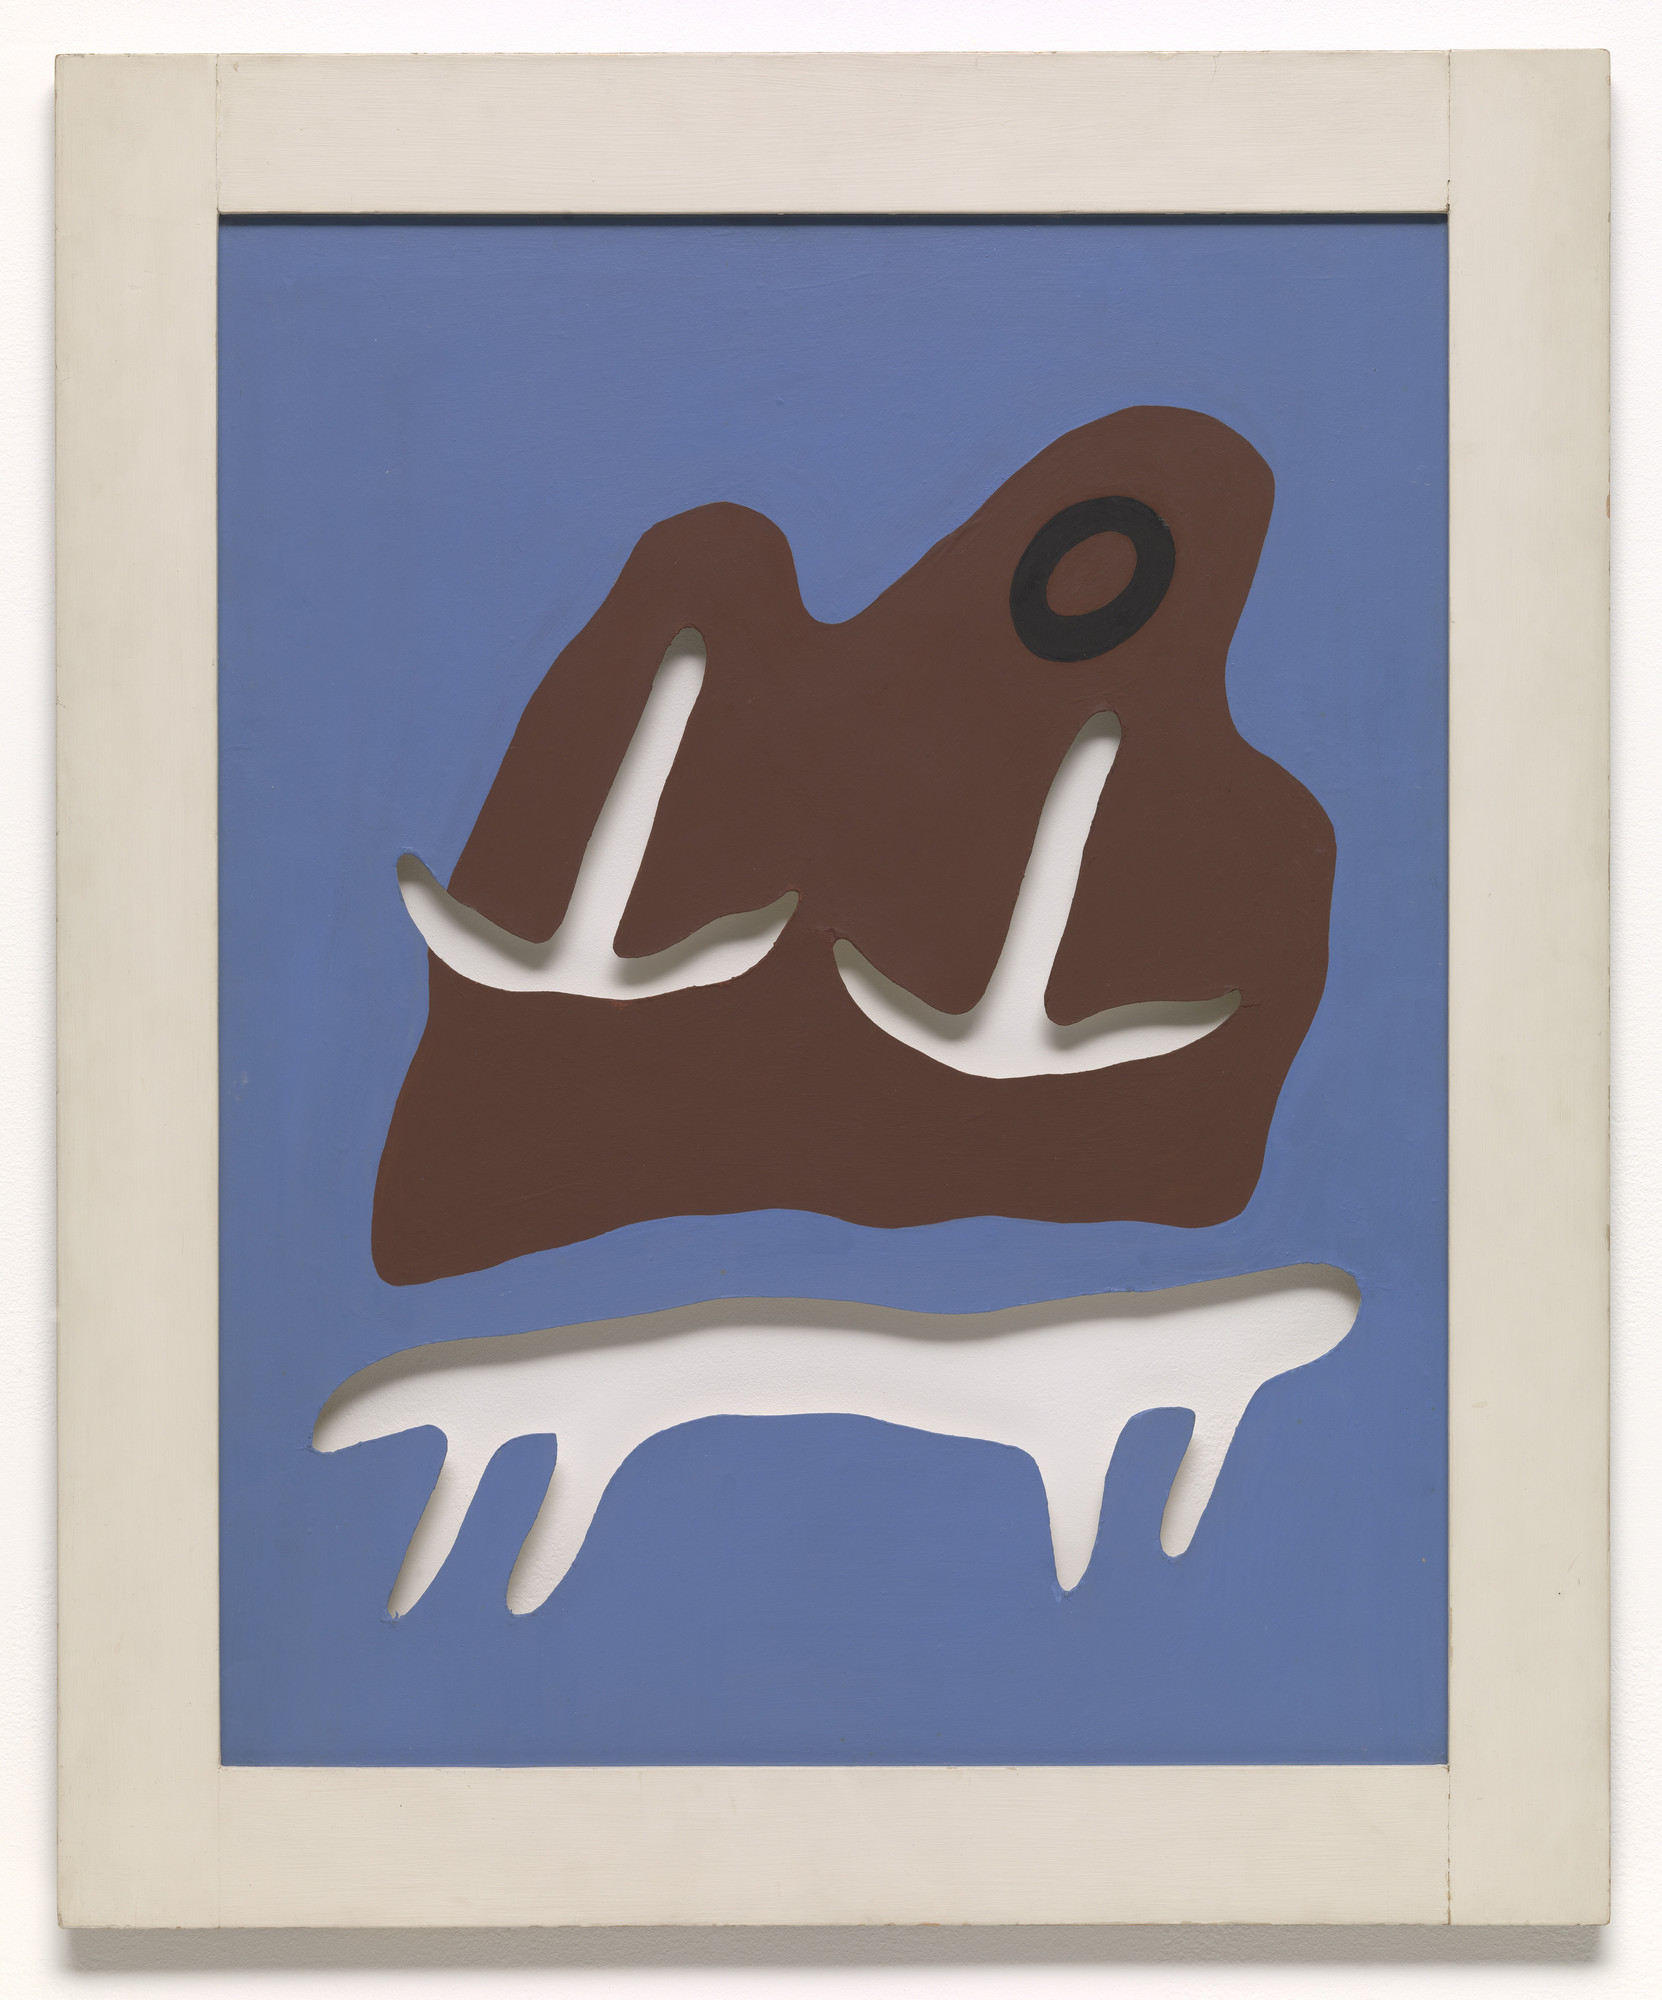 Jean (Hans) Arp. Mountain, Navel, Anchors, Table. 1925